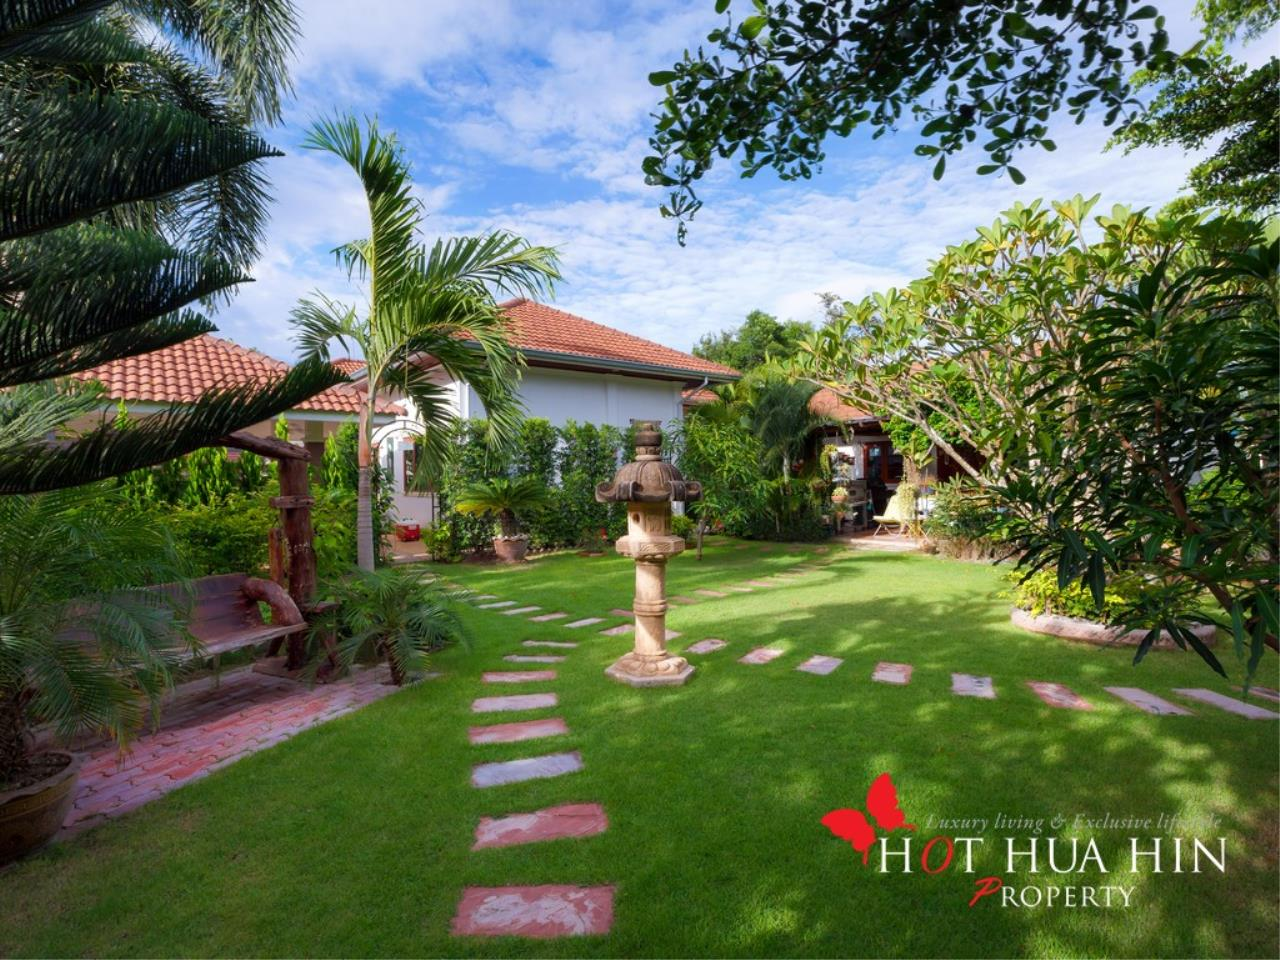 Hot Hua Hin Co. Ltd. Agency's Well Built Home With Stunning Gardens And Two Full Kitchens 33